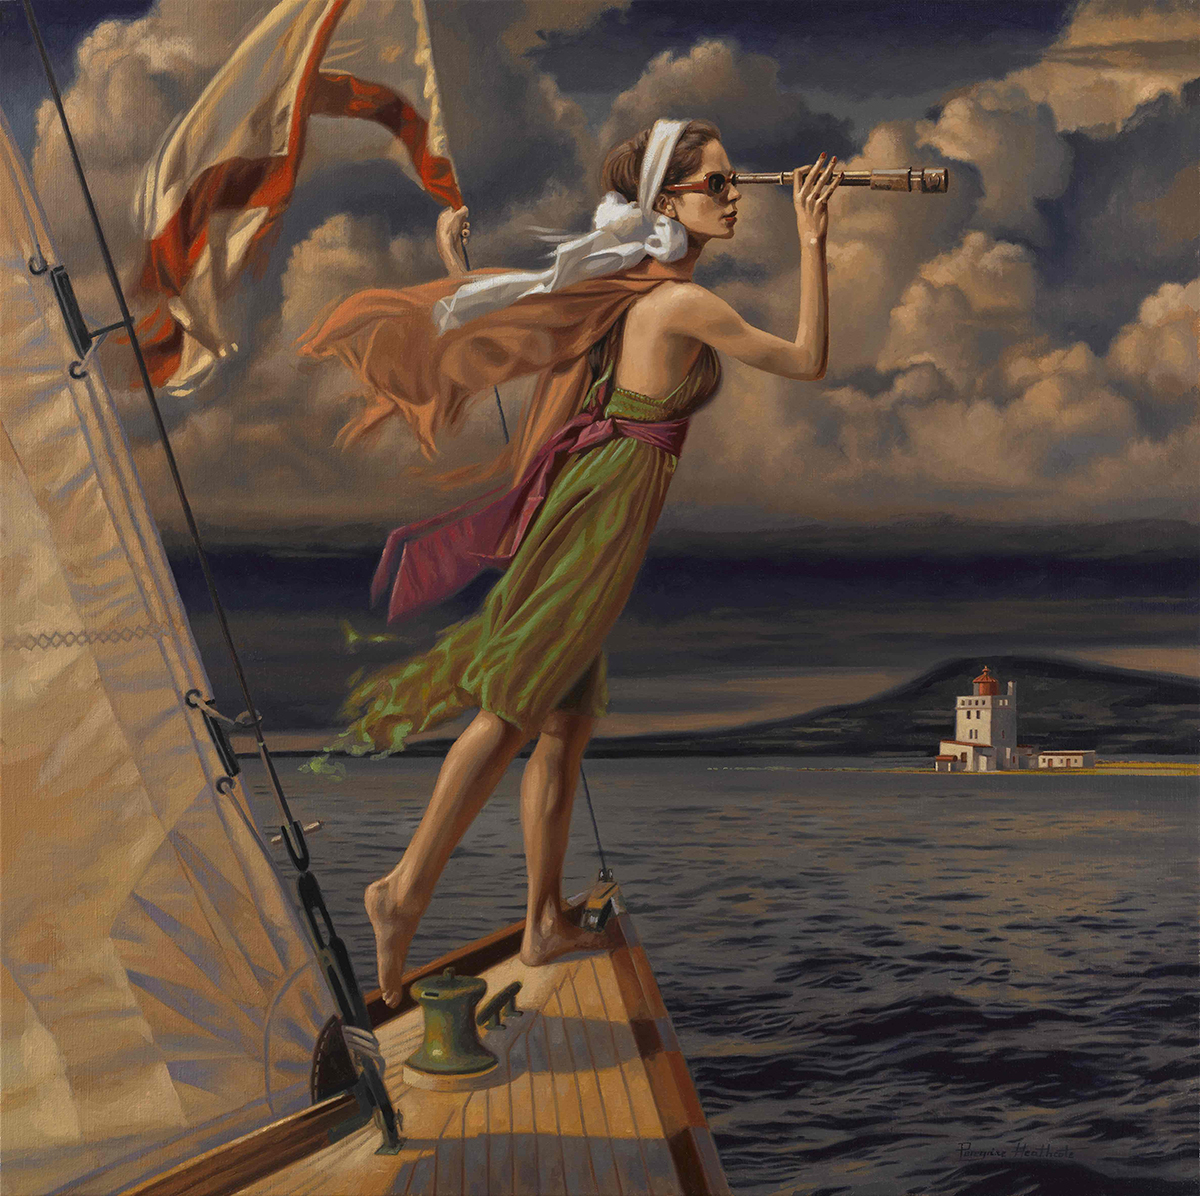 Peregrine Heathcote - Let Your Dreams Set Sail